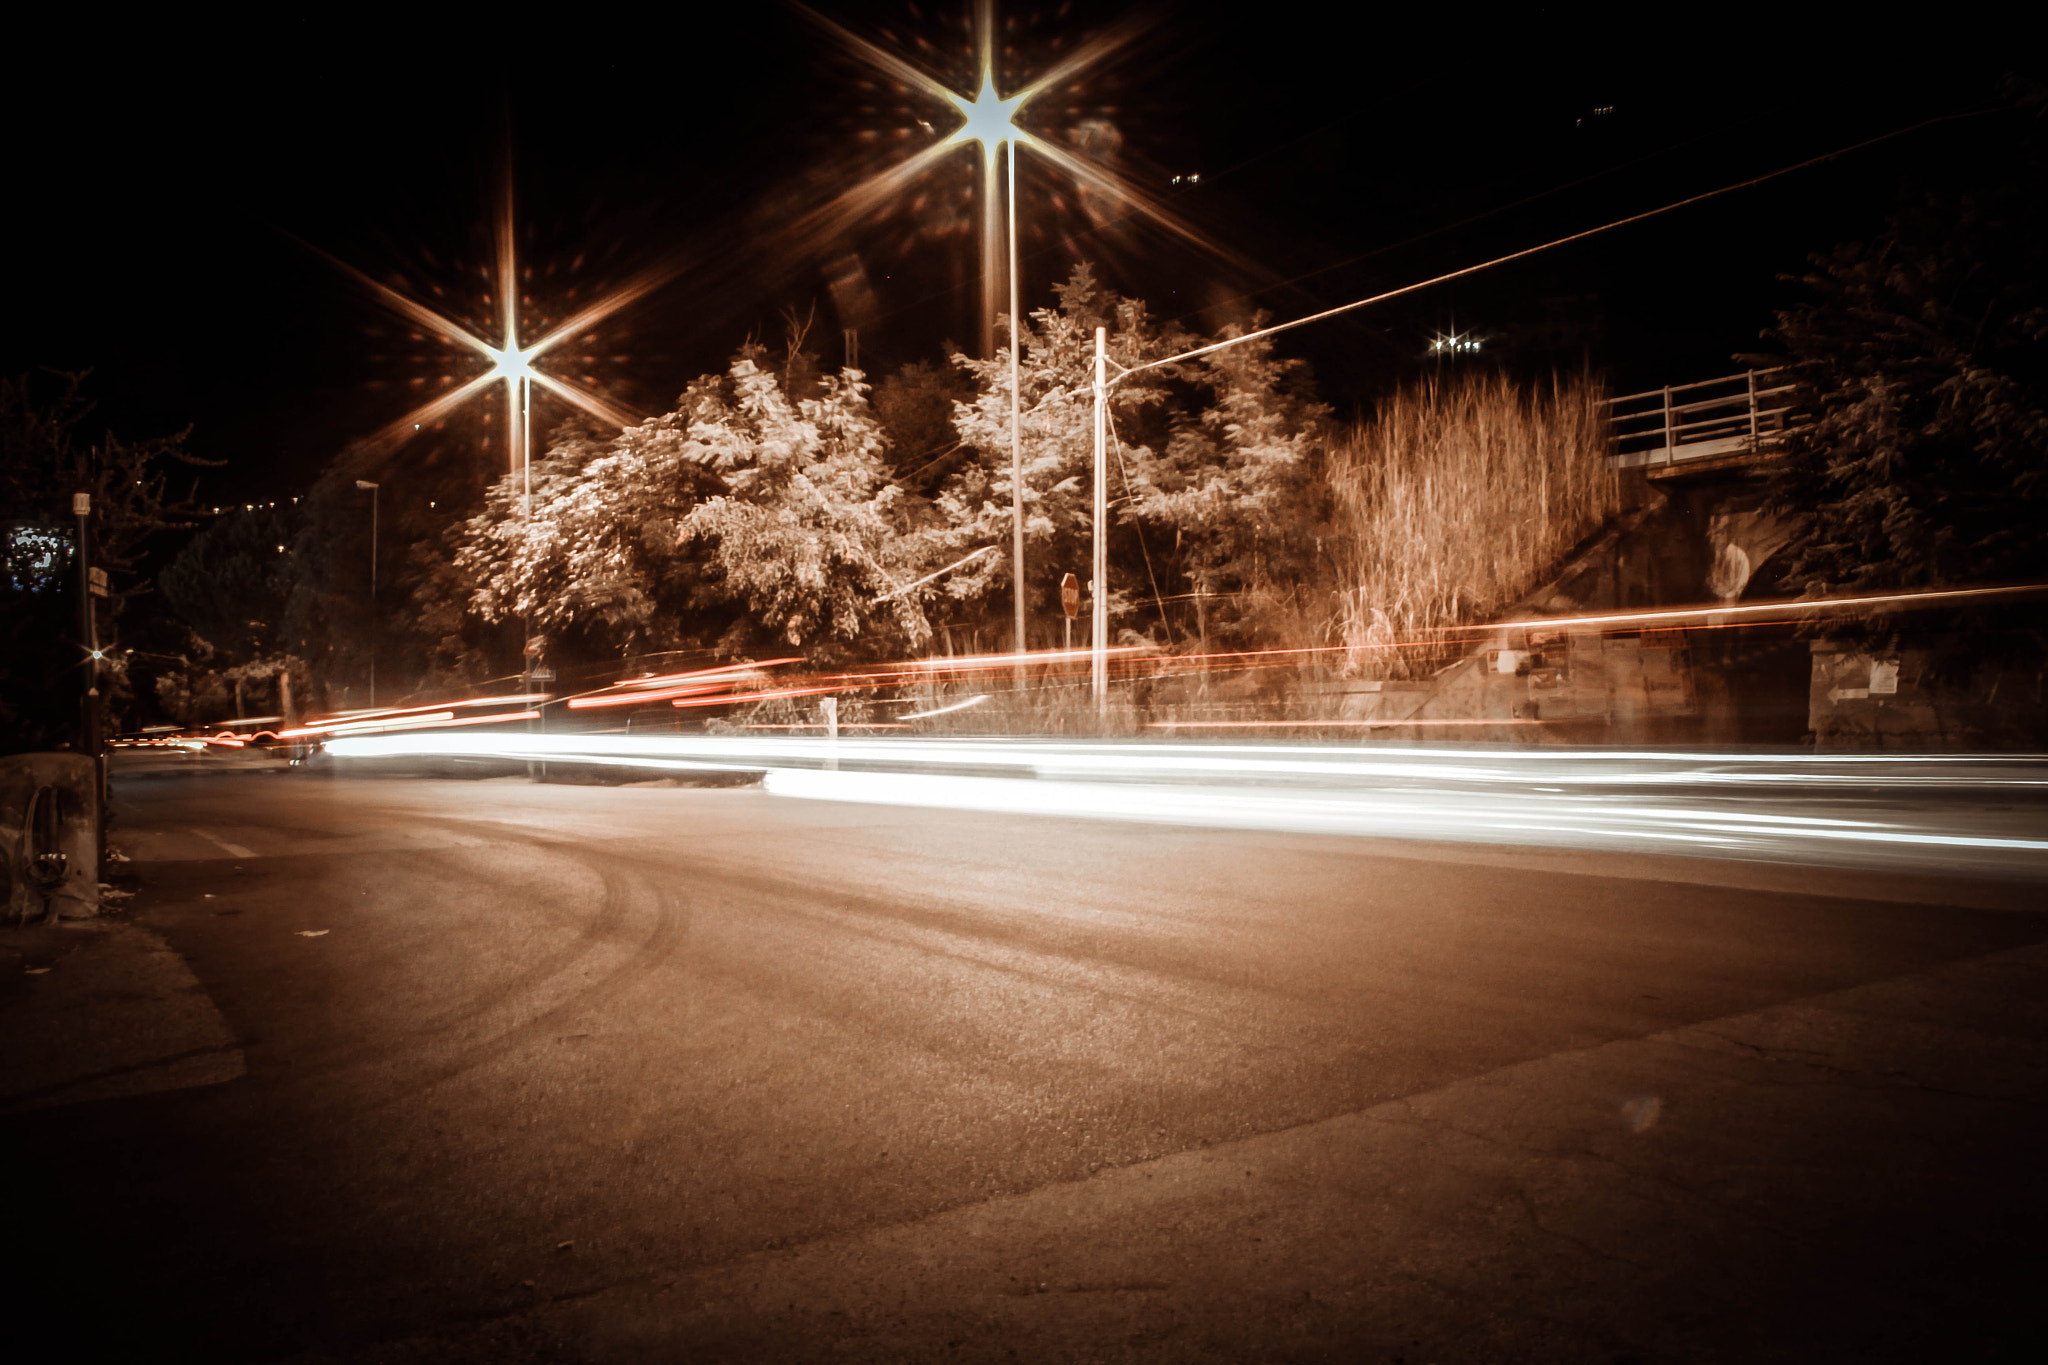 Photograph City Road by Vincenzo Coppola on 500px